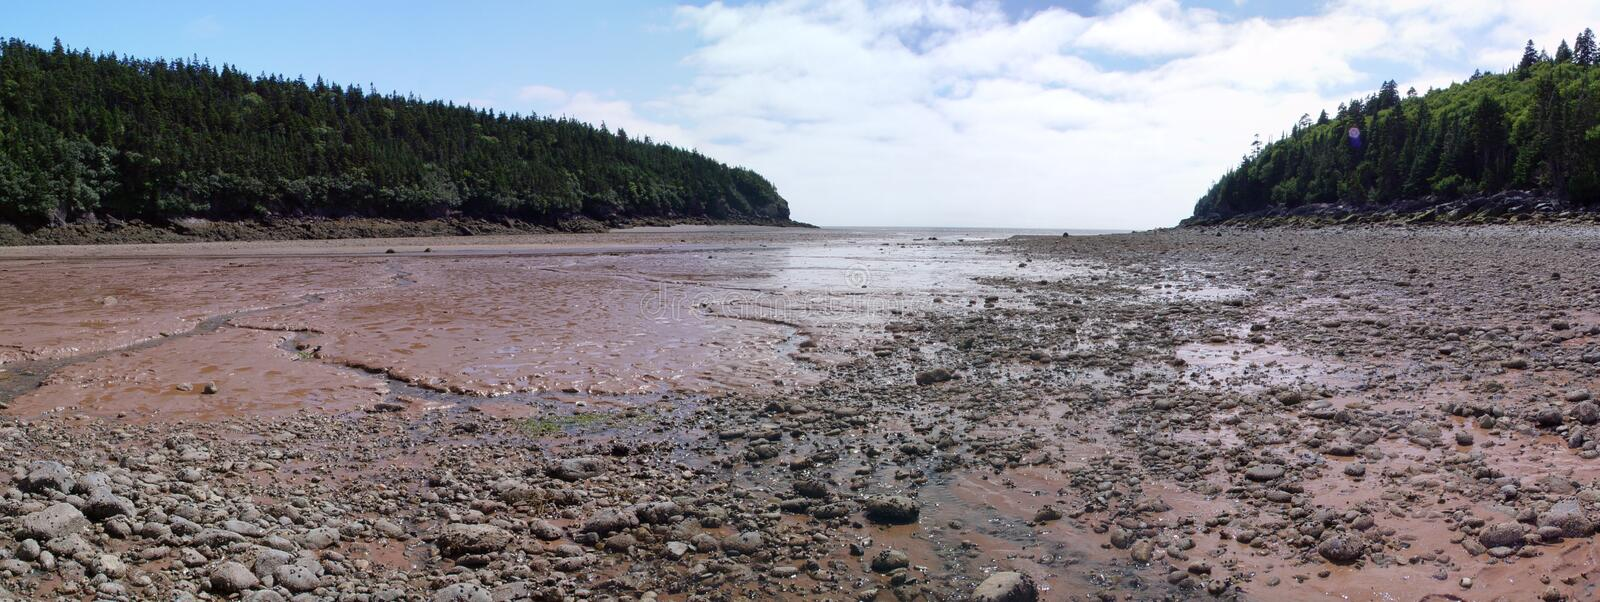 Bay of Fundy National Park royalty free stock image